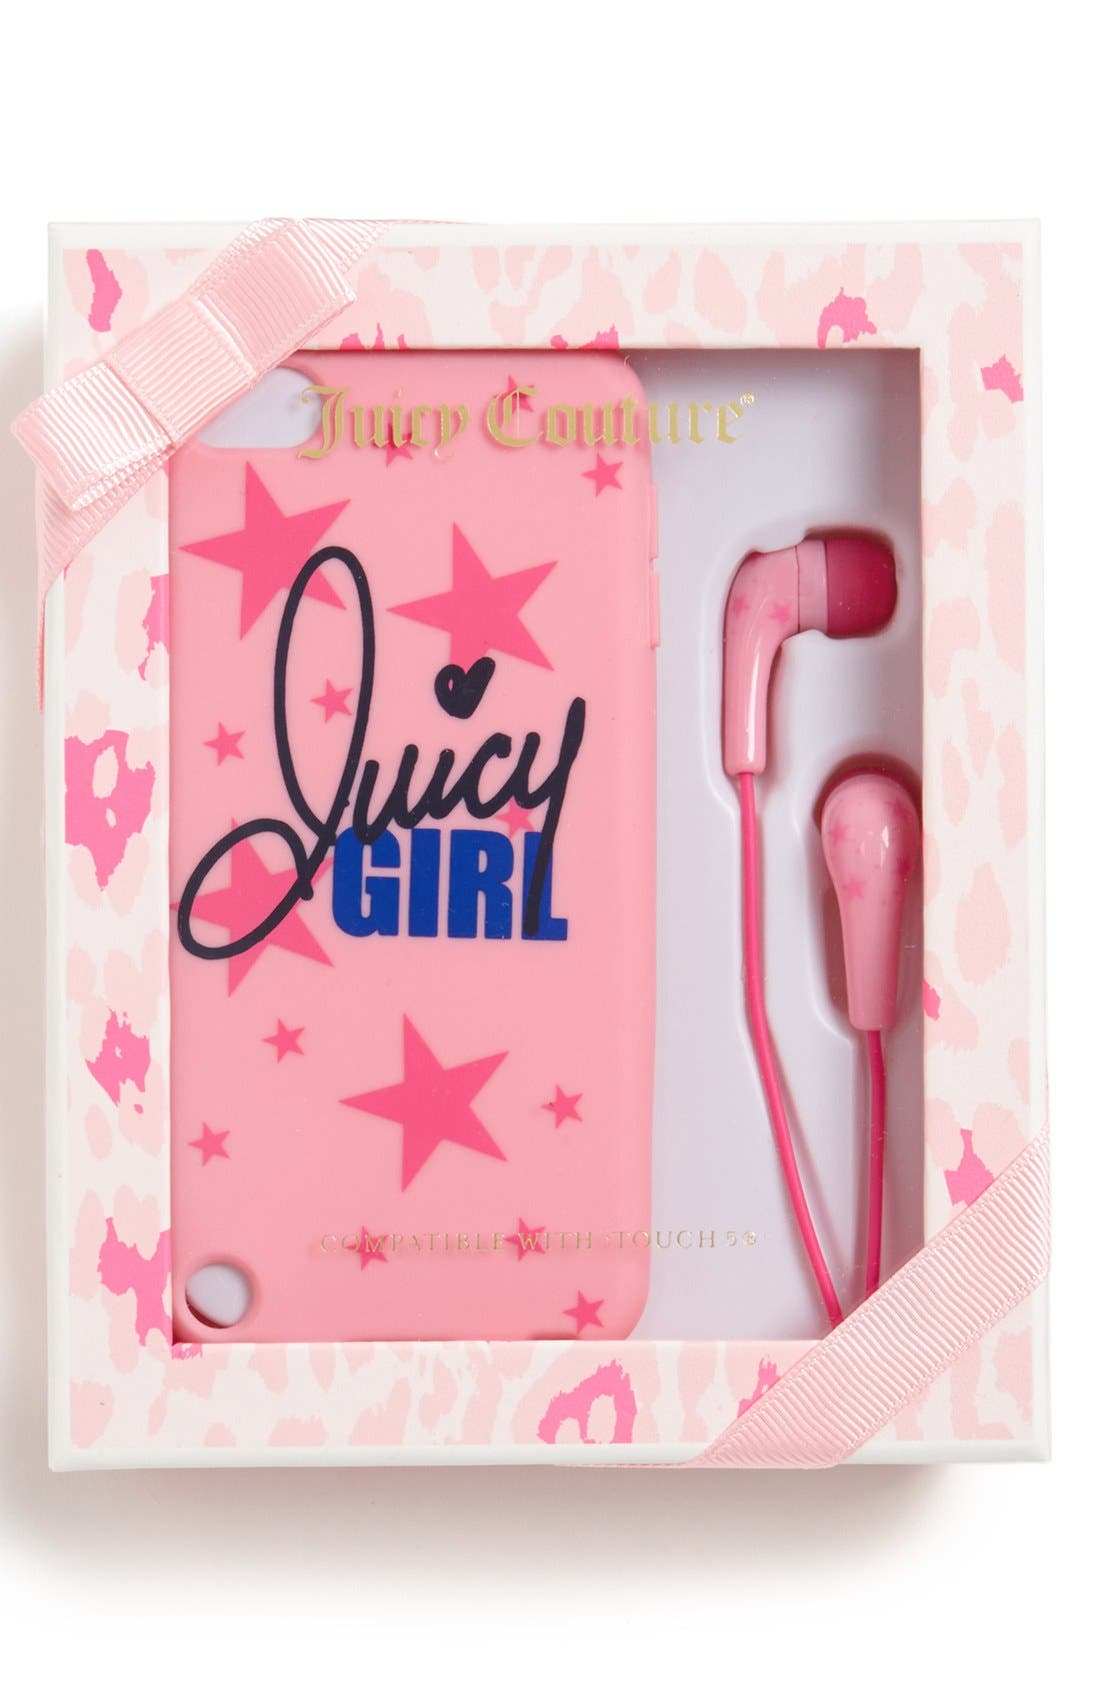 Main Image - Juicy Couture 'Stars' iPhone 5/5s Case & Earbuds